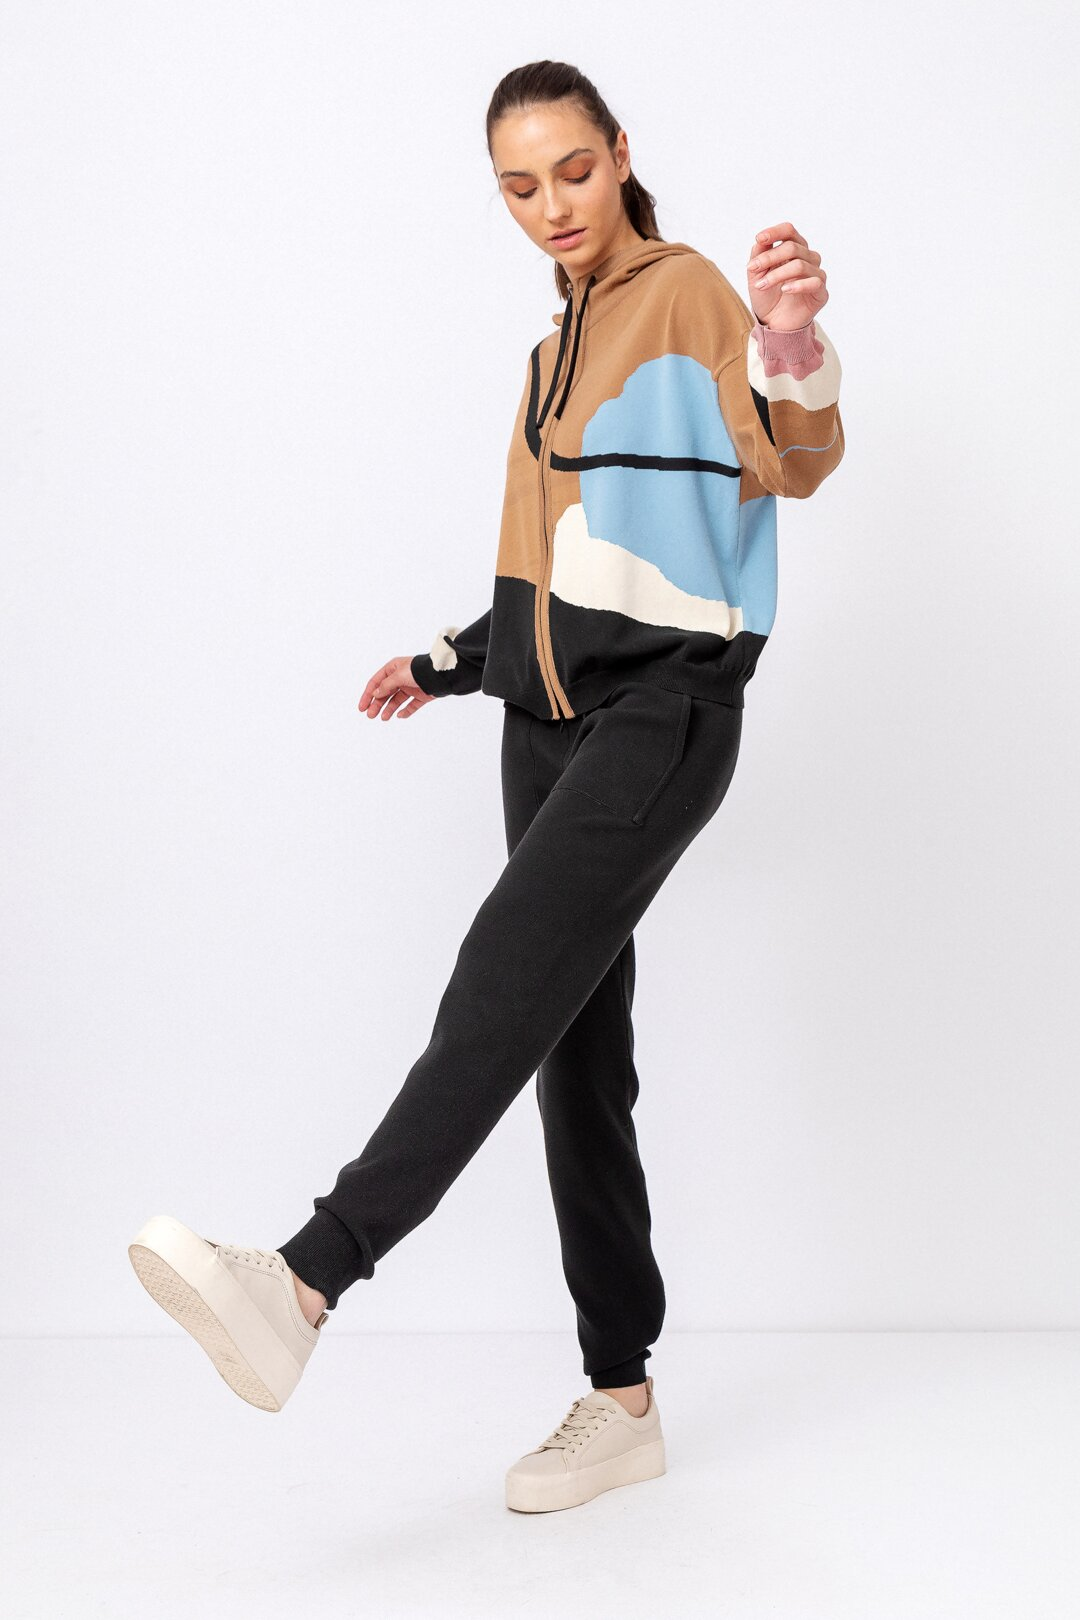 outfit-7c8a0051